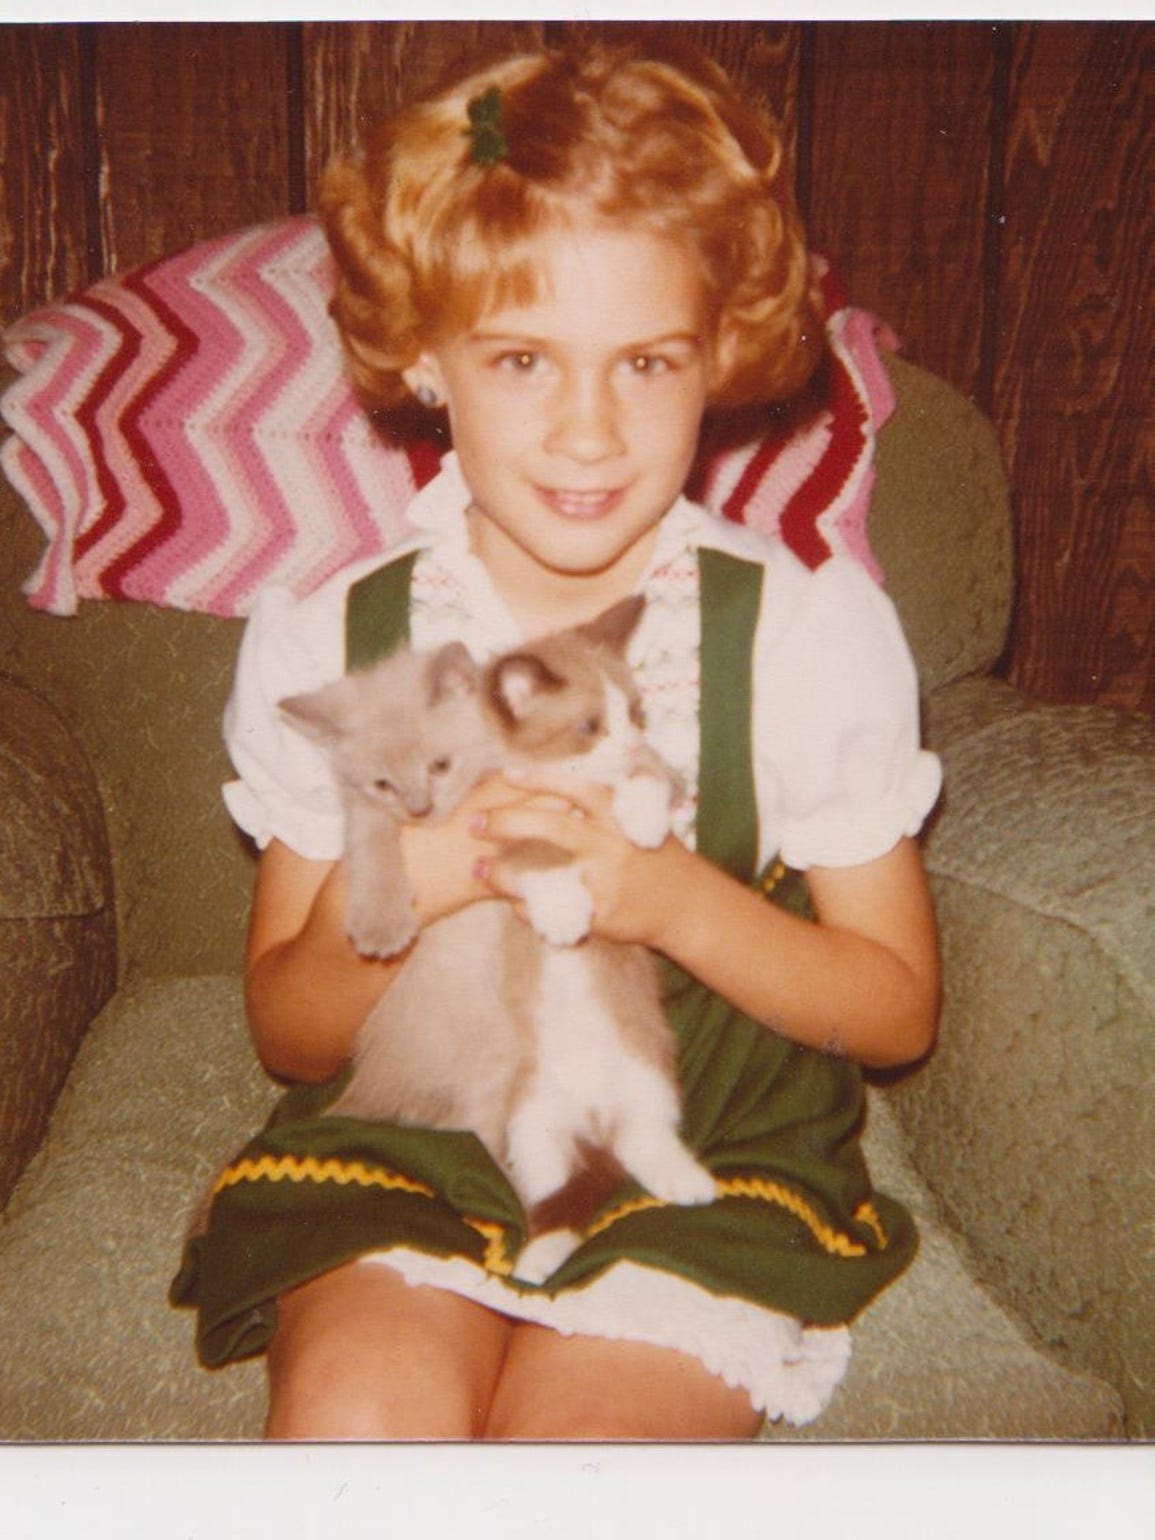 Heidi Wolfe poses for a picture with two kittens. Year